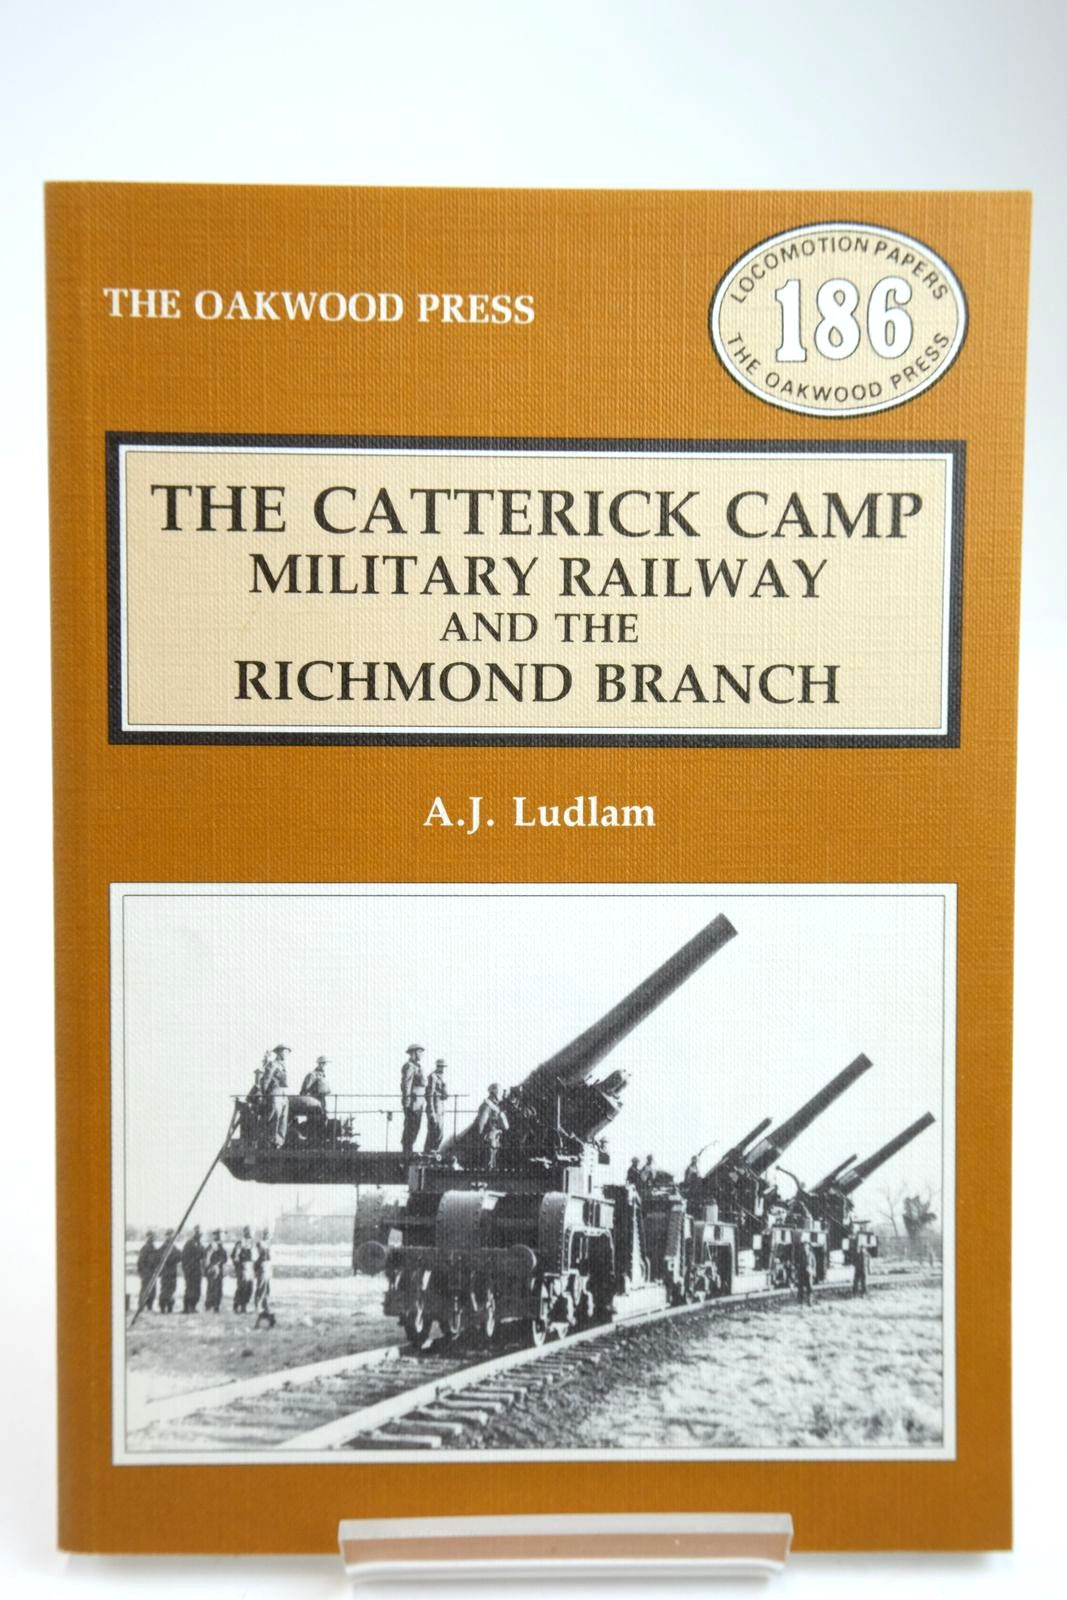 Photo of THE CATTERICK CAMP MILITARY RAILWAY AND THE RICHMOND BRANCH written by Ludlam, A.J. published by The Oakwood Press (STOCK CODE: 2133700)  for sale by Stella & Rose's Books